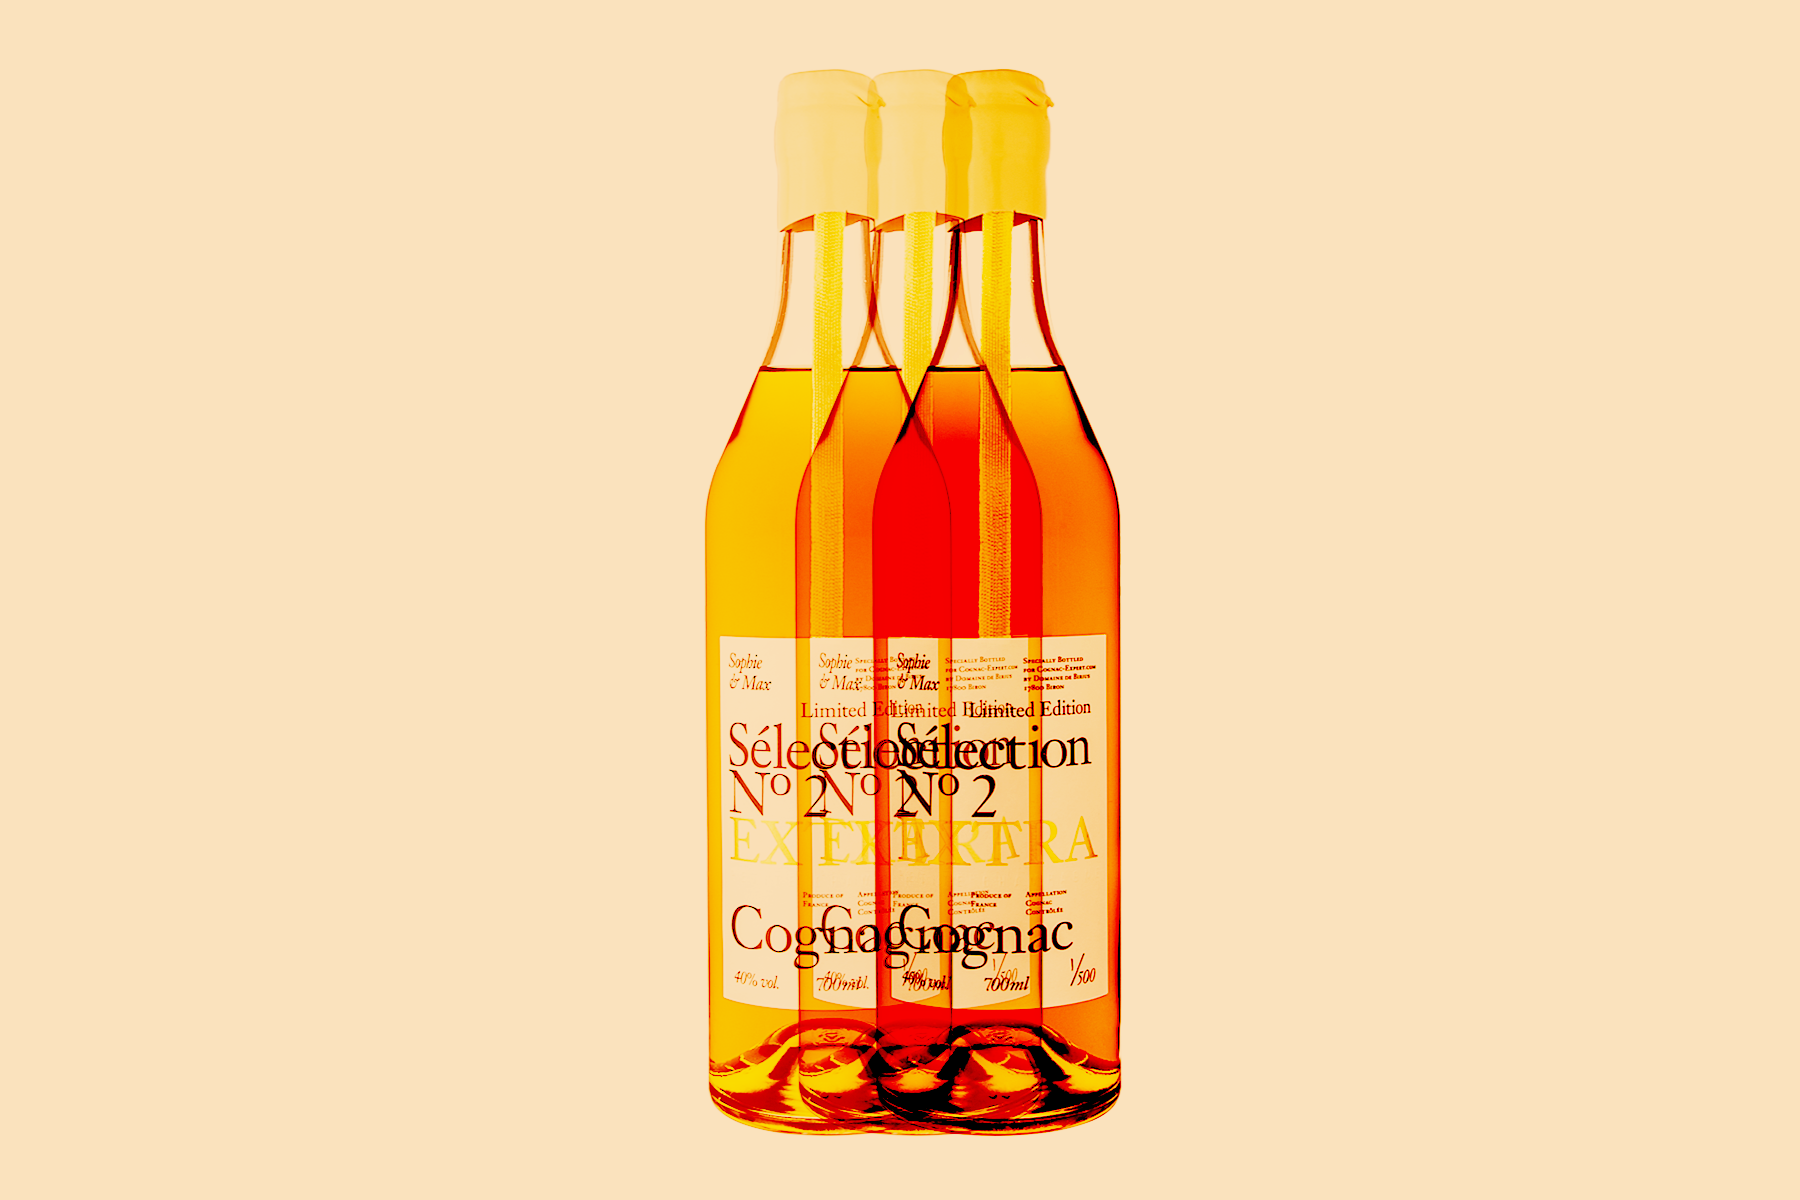 Brother and sister duo, Sophie & Max, are the force behind Cognac Expert, the world's leading website about Cognac with an extensive and thoughtfully curated online Cognac shop. The siblings turned passion into product in 2017, when they launched Sophie & Max's Sélection N° 1 X.O. Cognac —an incredibly unique line bottled by small producer Jacques Petit, that was only available via Cognac Expert in small quantities, for a limited time. Sophie & Max, third generation farm owners who live in the region and manage all sourcing for the product lines, are back with a new chapter in their own Cognac story.For Holiday 2018, they will introduce just 500 bottles of Sophie & Max's Sélection N° 2 EXTRA Cognac, a smooth and gentle blend of three complementary vintages —from 1989,1982, and 1975— aged for 3 decades and more. There will only be 500 bottles of this incredibly rare and premium blend available internationally. -